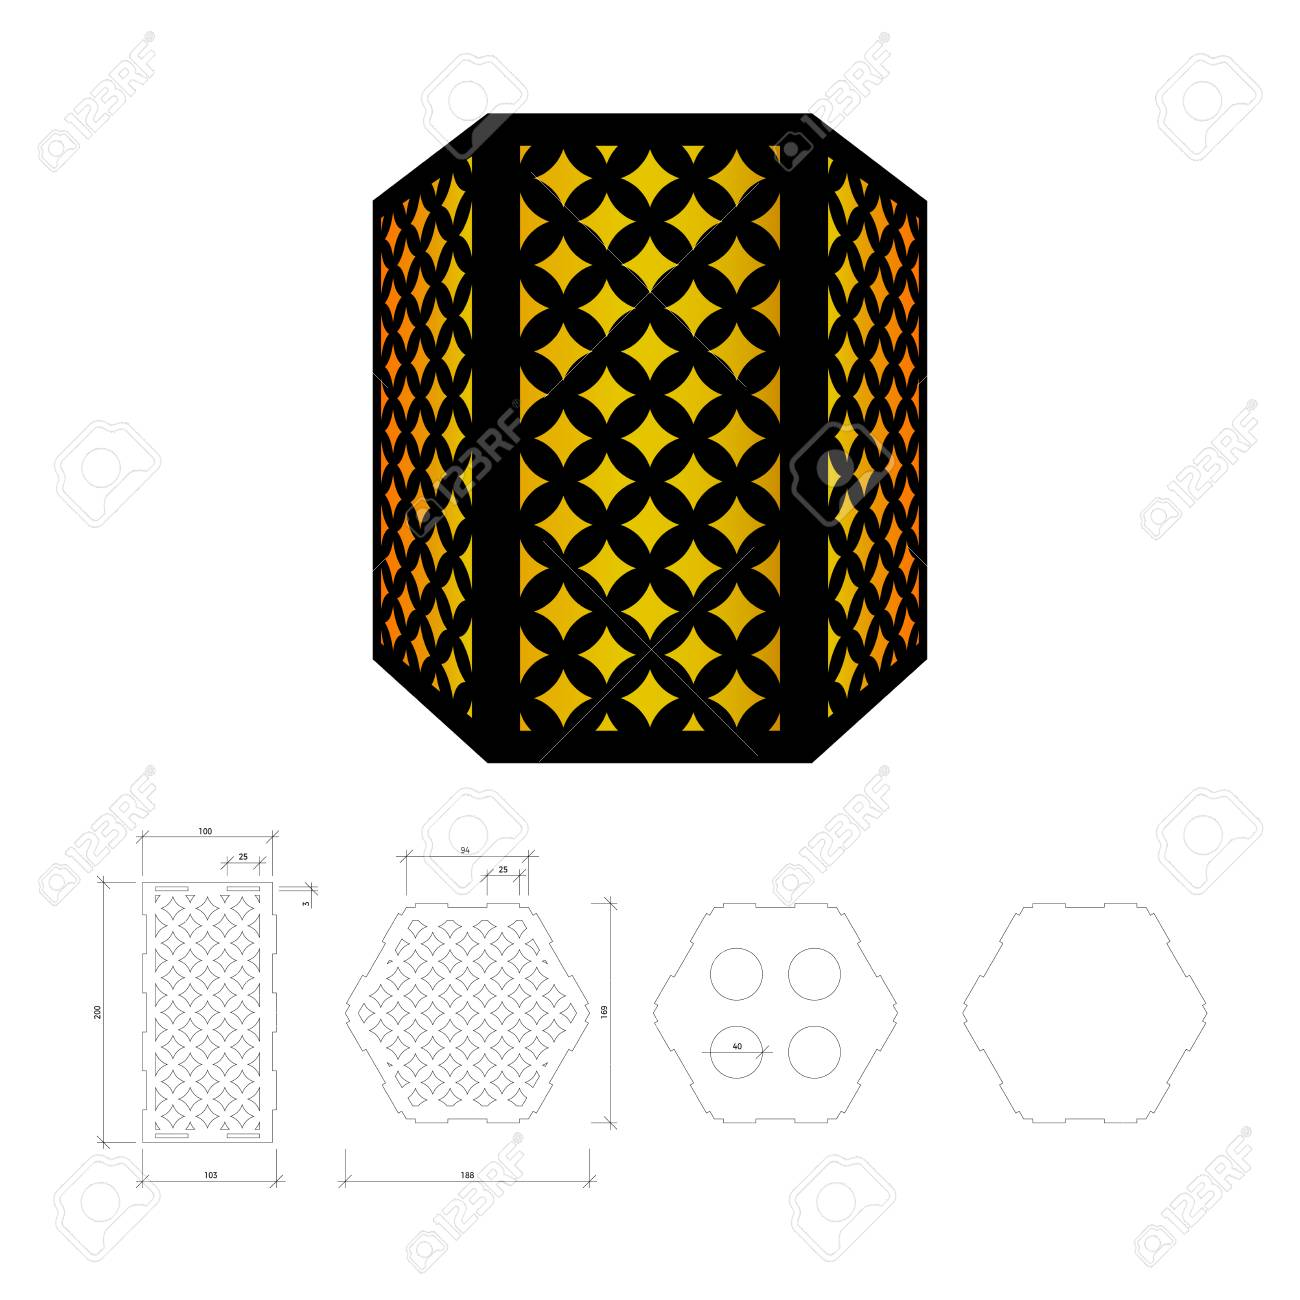 Cut out template for lamp, candle holder, lantern or chandelier